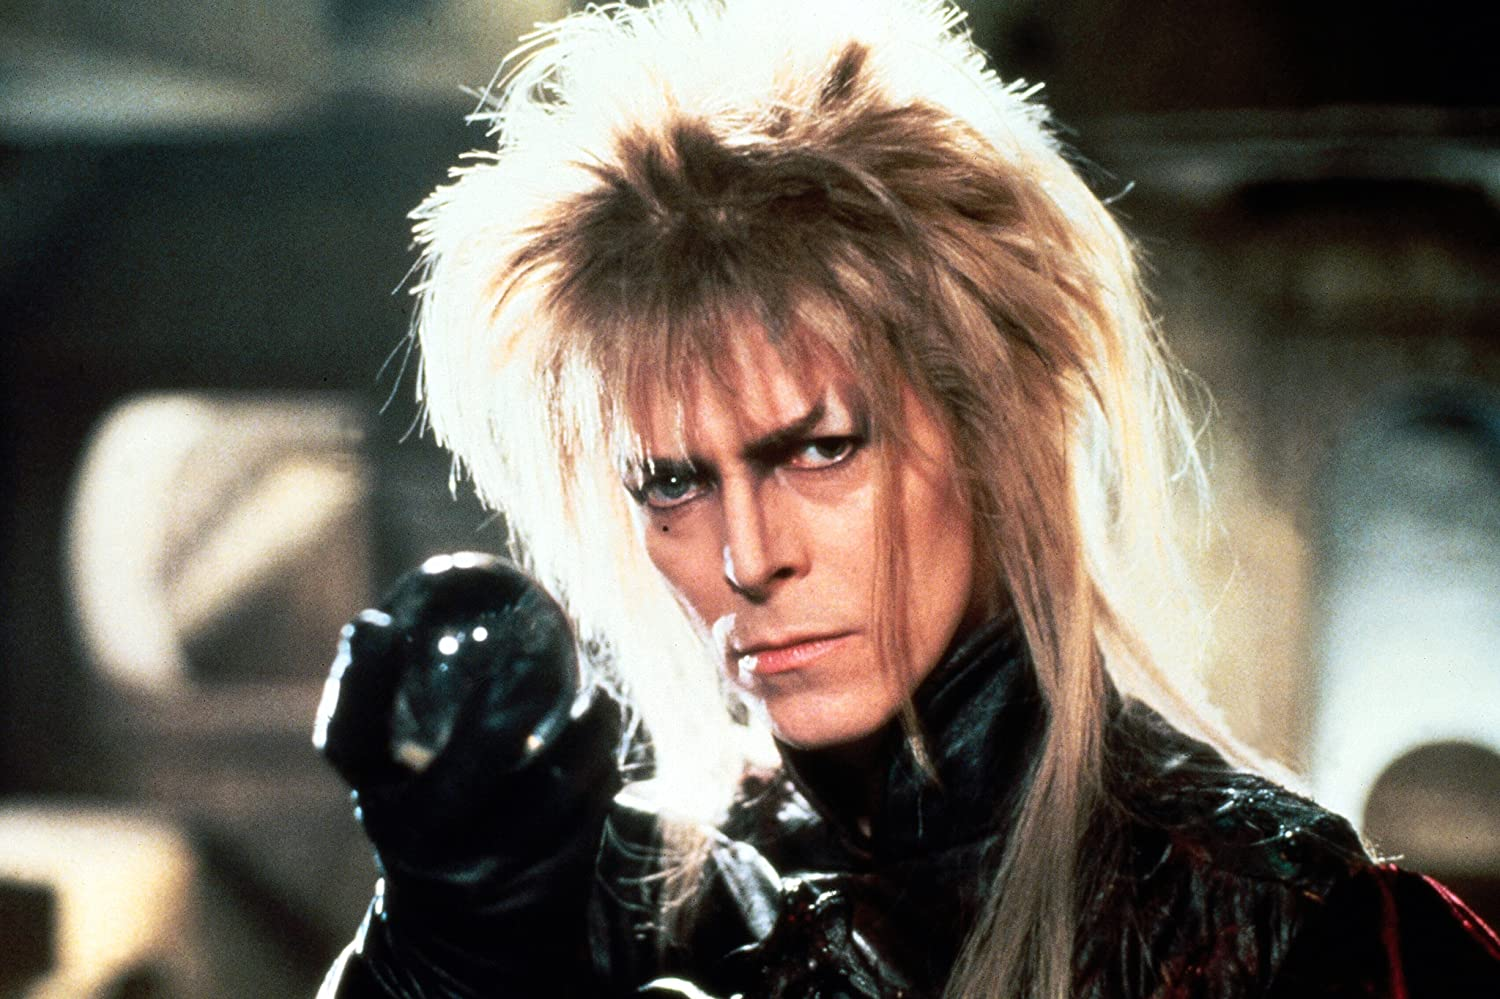 David Bowie in Labyrinth 1986